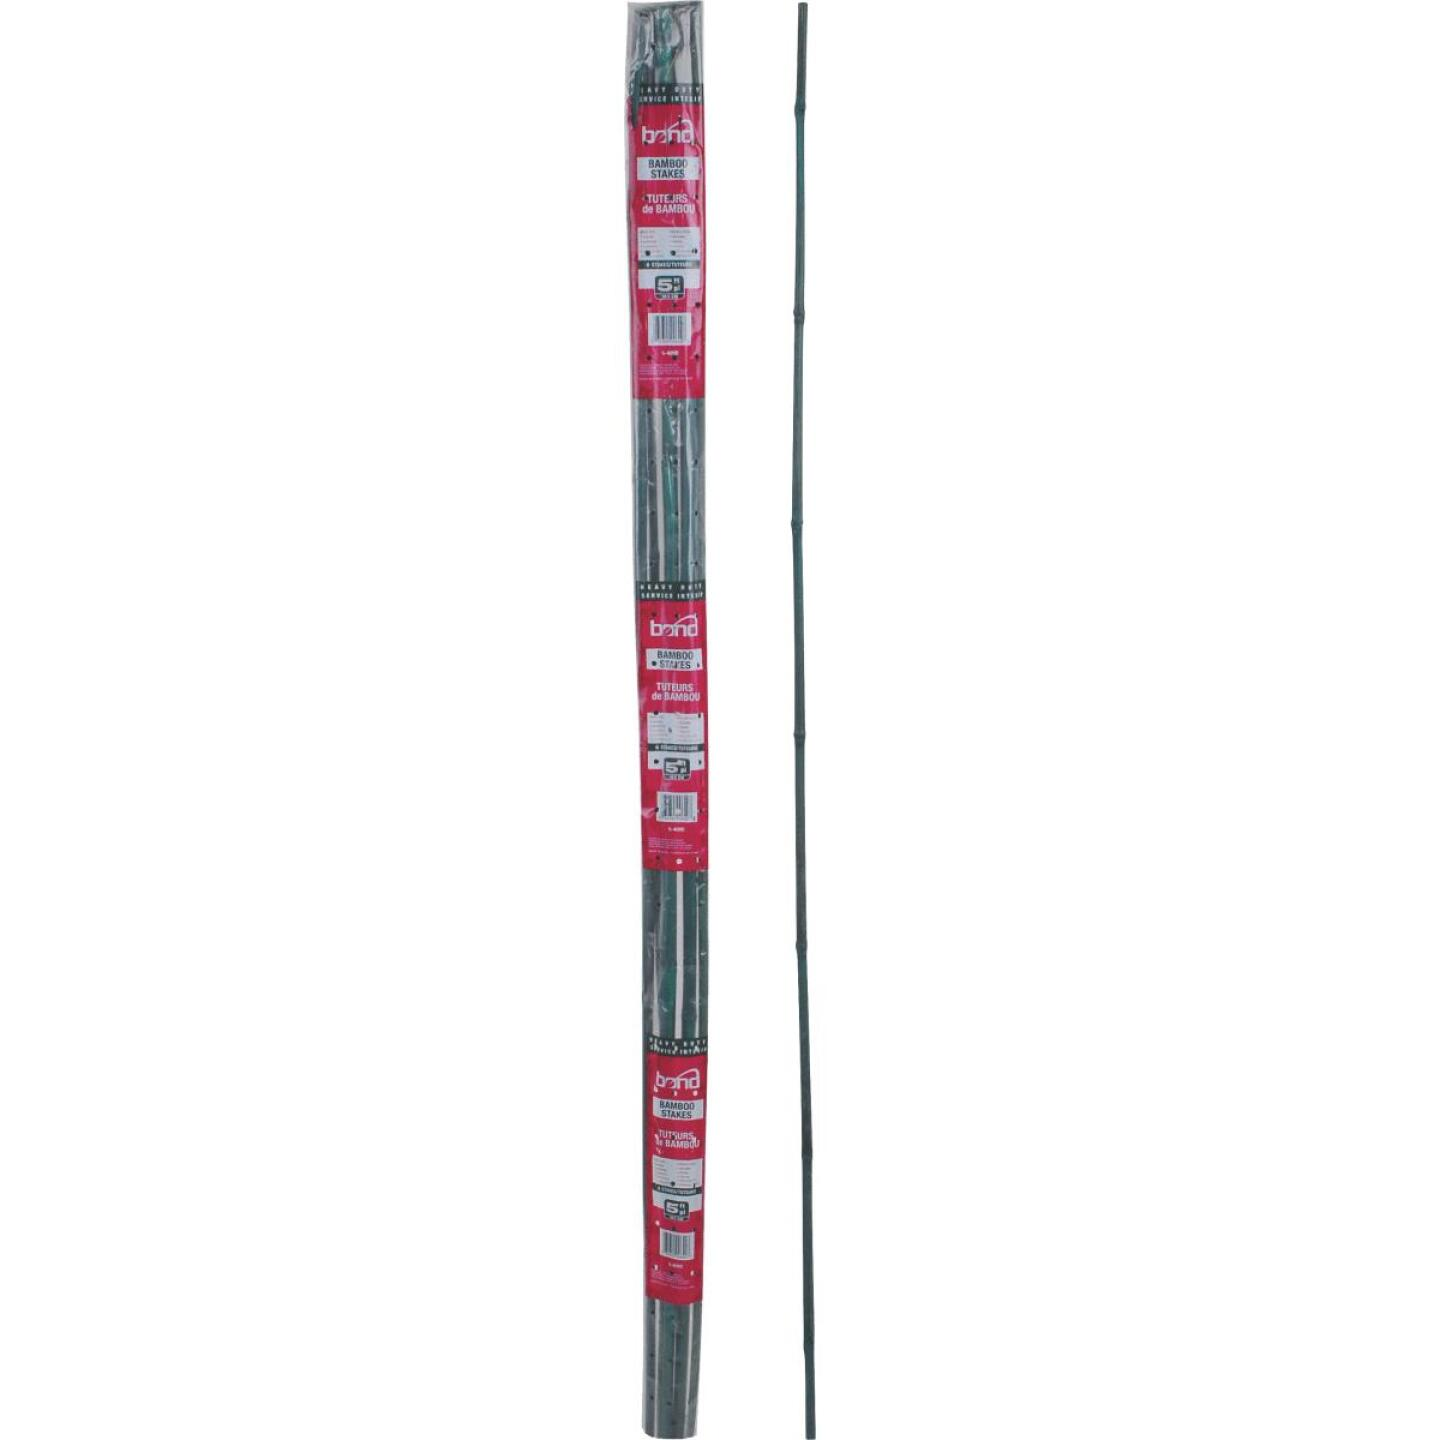 Bond 6 Ft. Green Bamboo Plant Stakes (6-Pack) Image 5